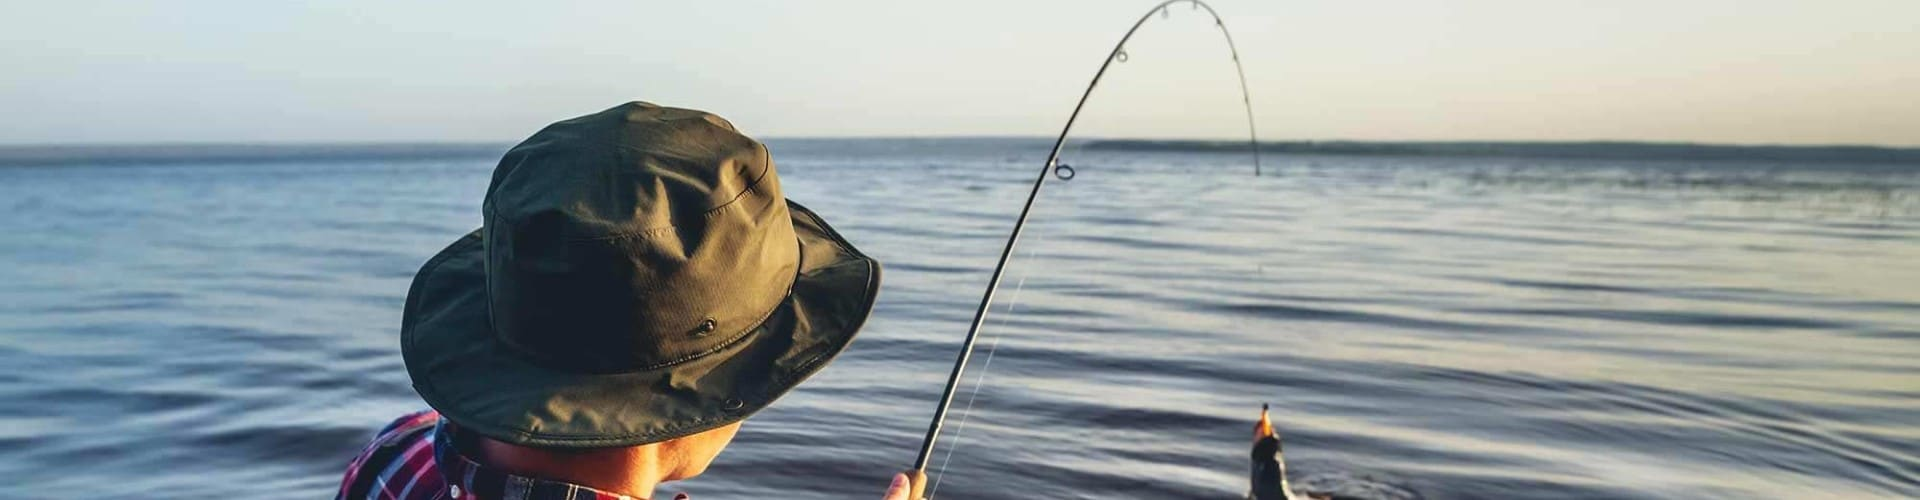 Best Fishing Rods - Top Rated and Reviewed